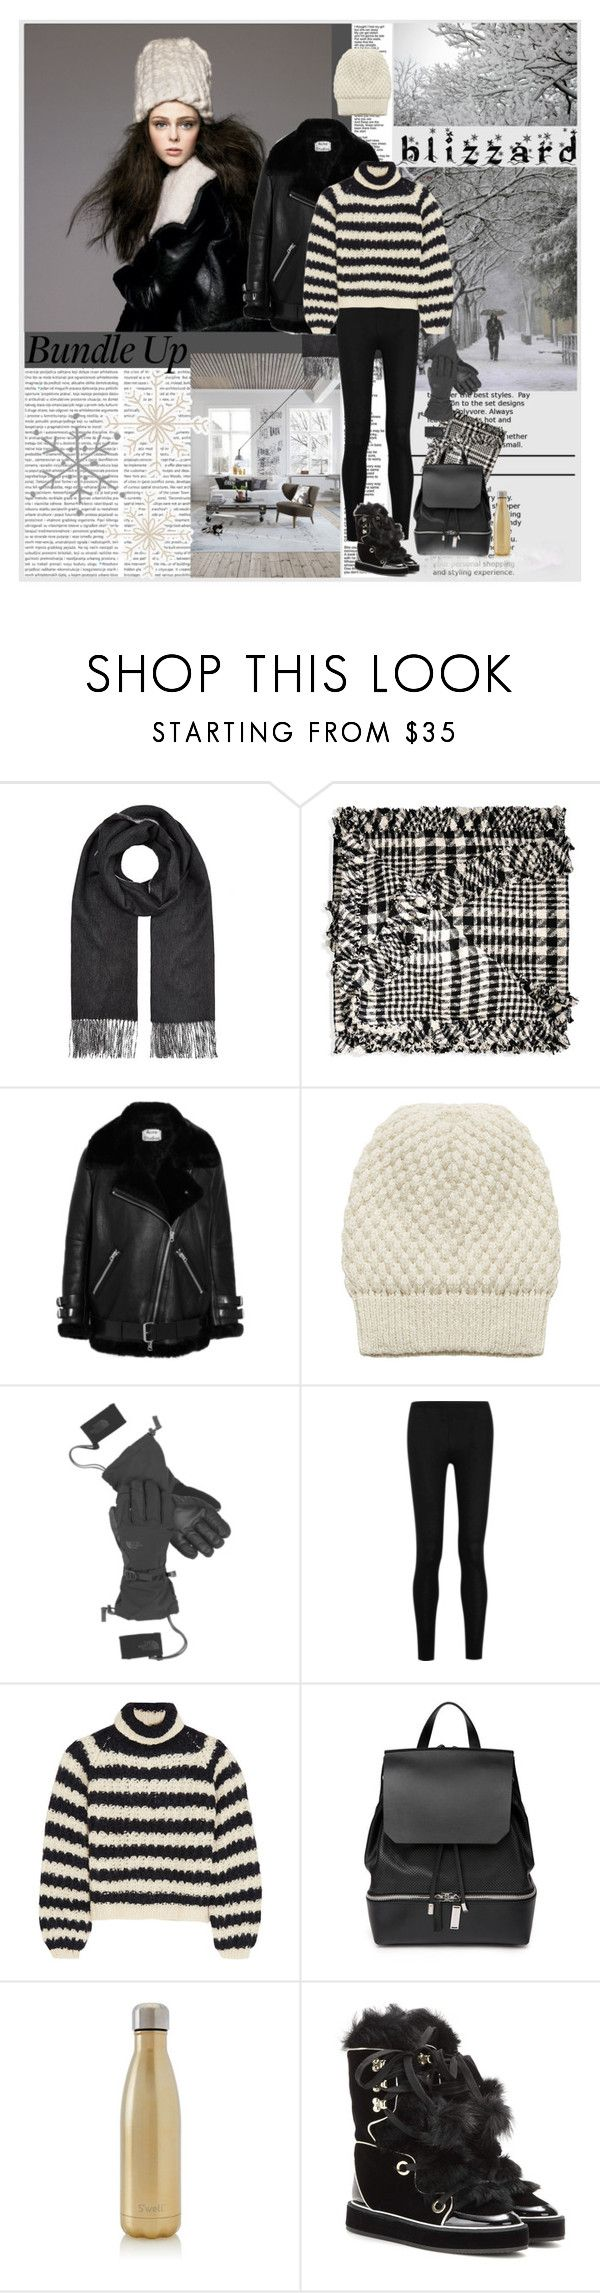 """""""Blizzard- Polyvore Contest"""" by shift ❤ liked on Polyvore featuring rag & bone, Simone Rocha, Acne Studios, Alice + Olivia, The North Face, Donna Karan, Chloé, COSTUME NATIONAL, S'well and Nicholas Kirkwood"""